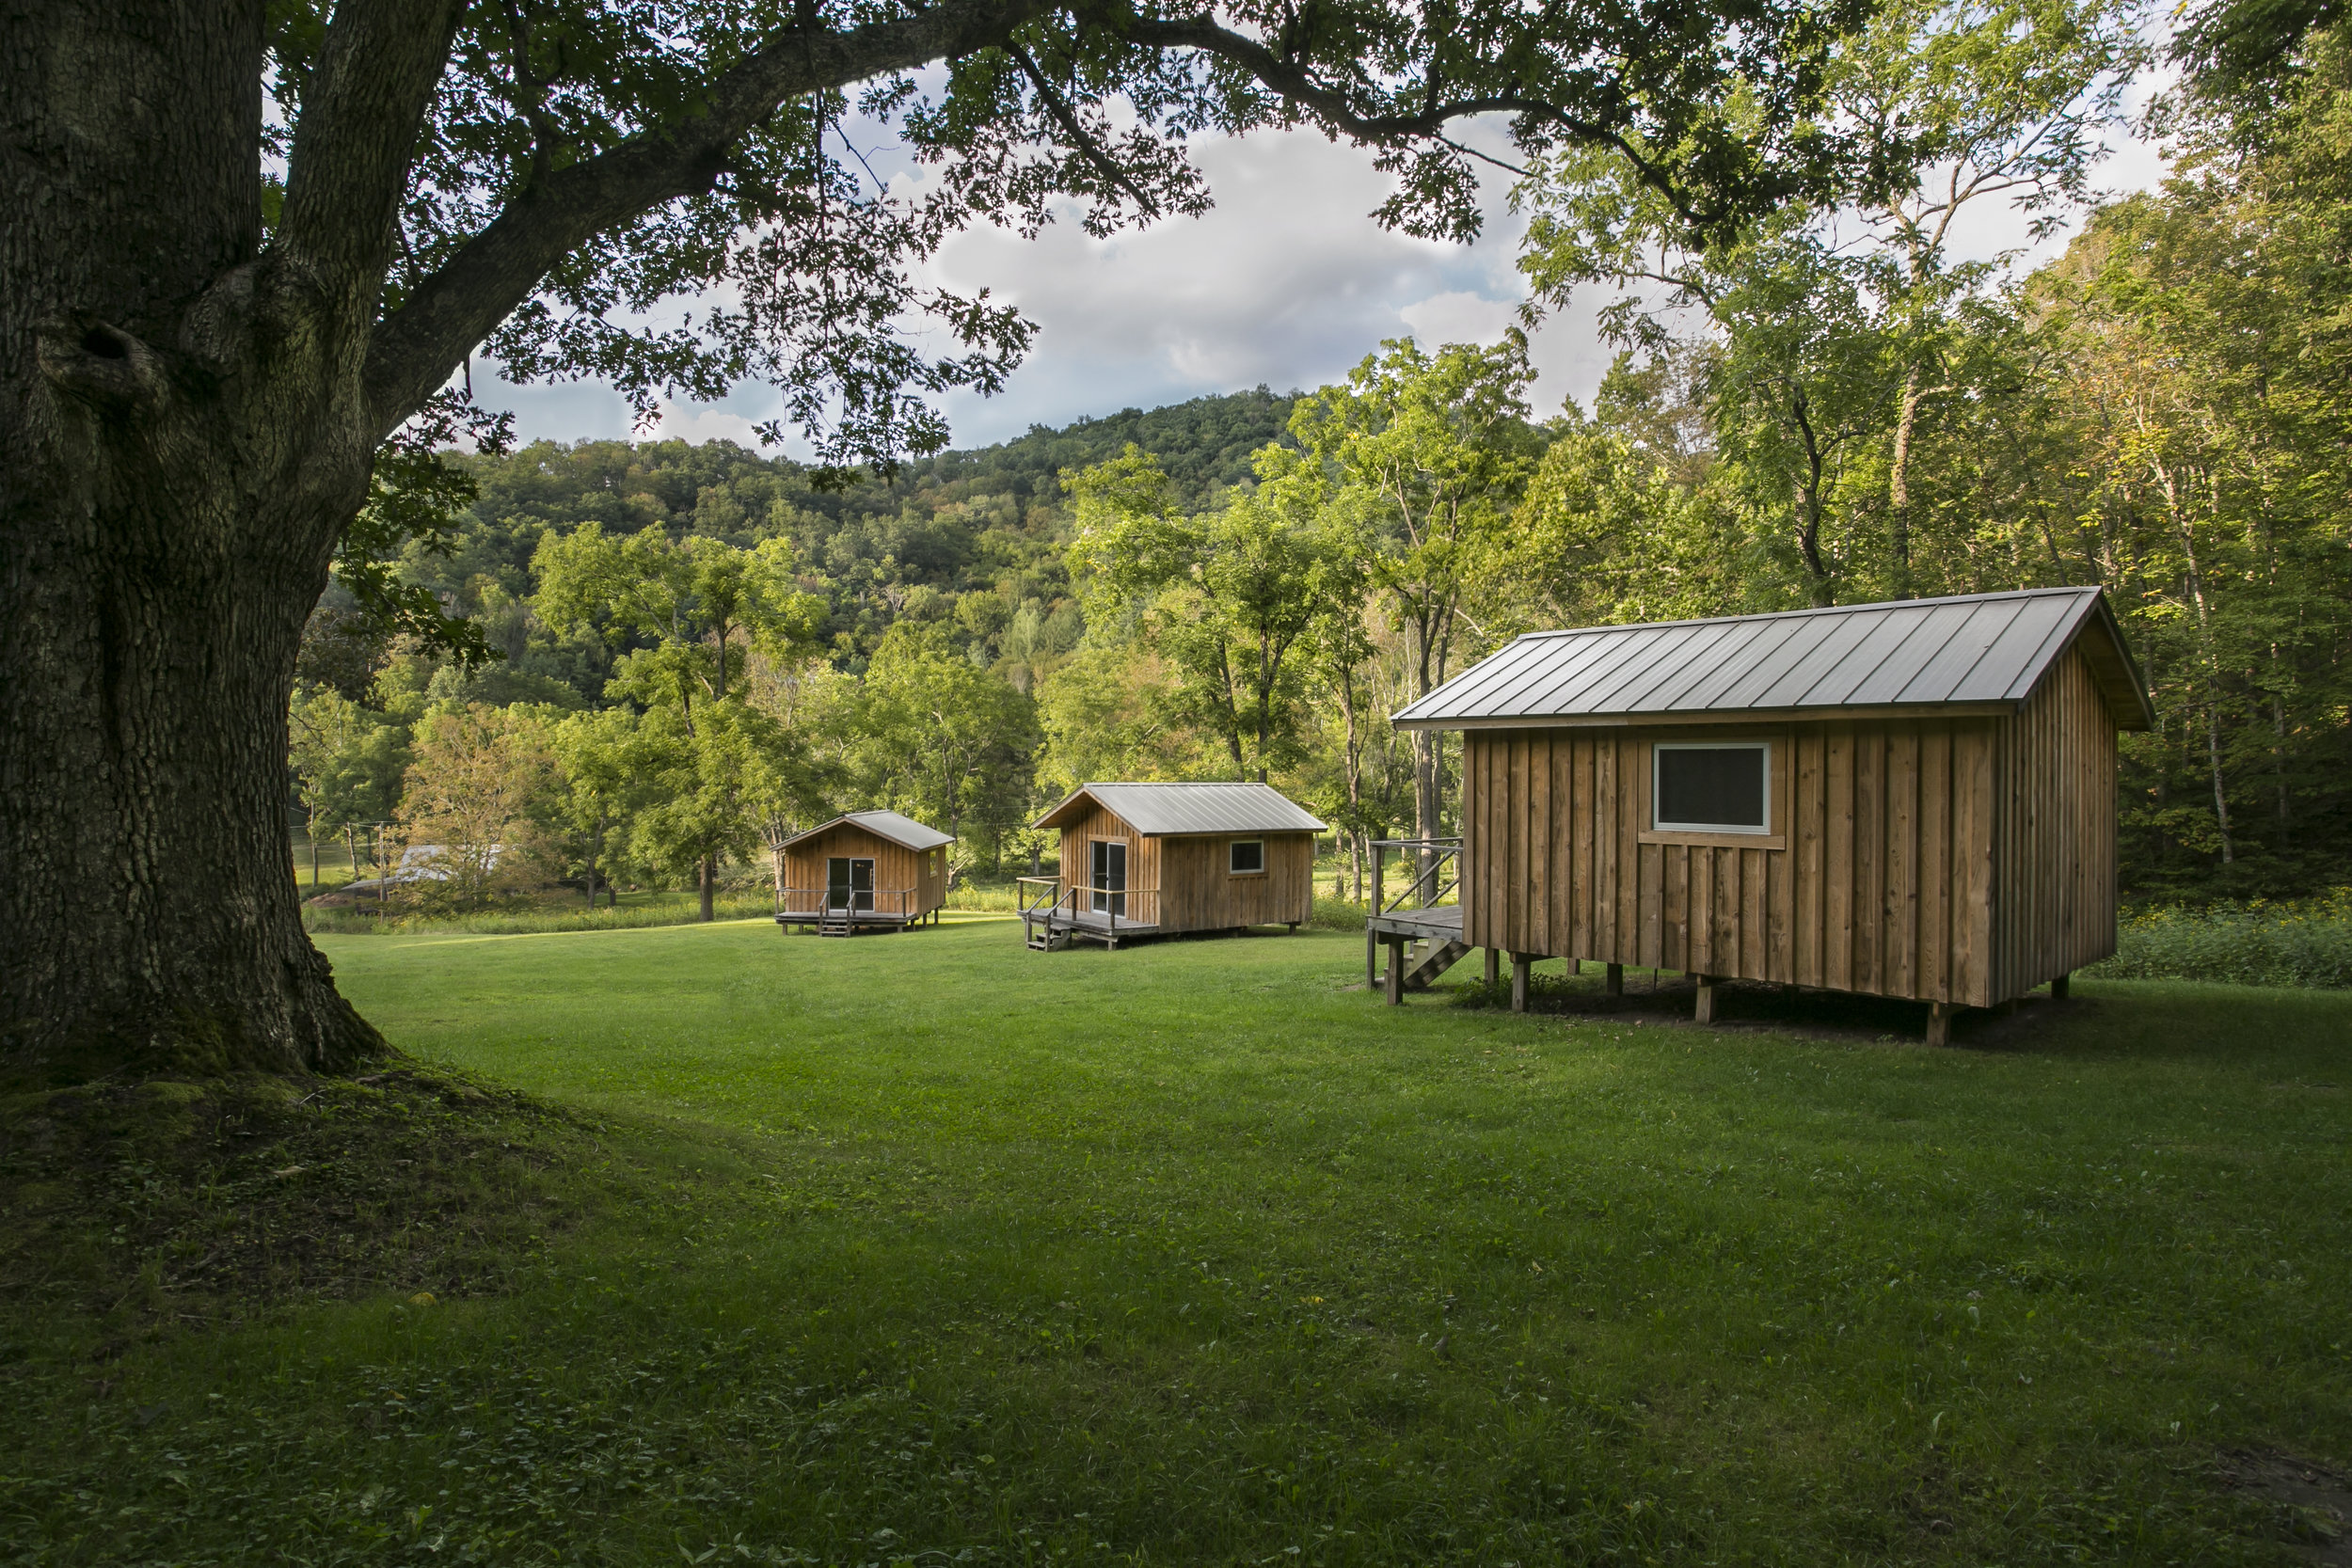 Cabins at the Training Grounds